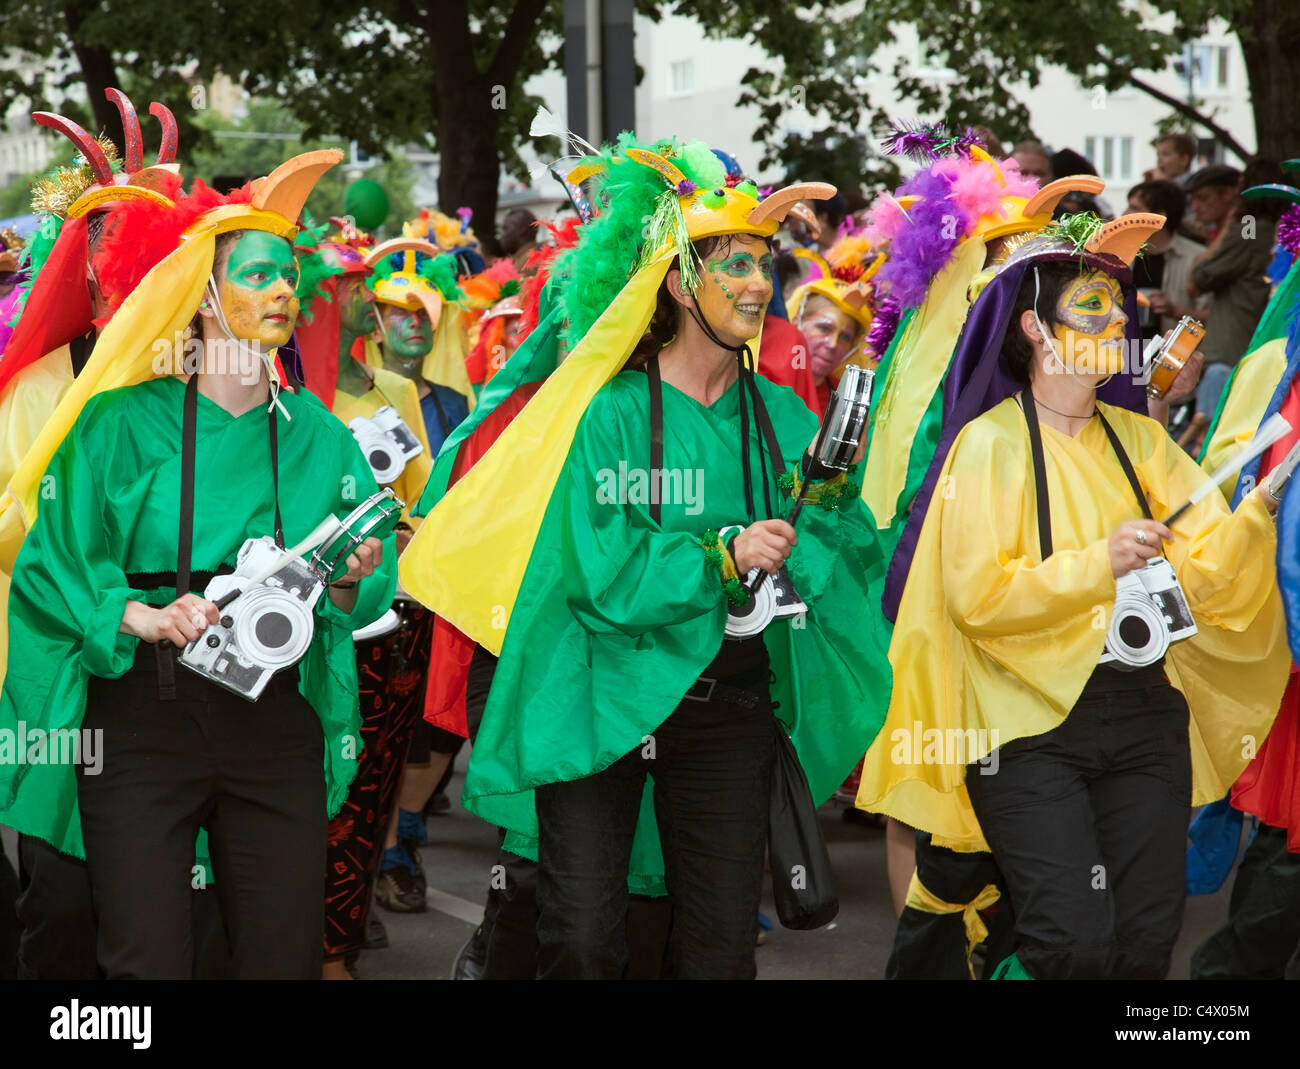 Carnaval des Cultures, Berlin 2011 Photo Stock